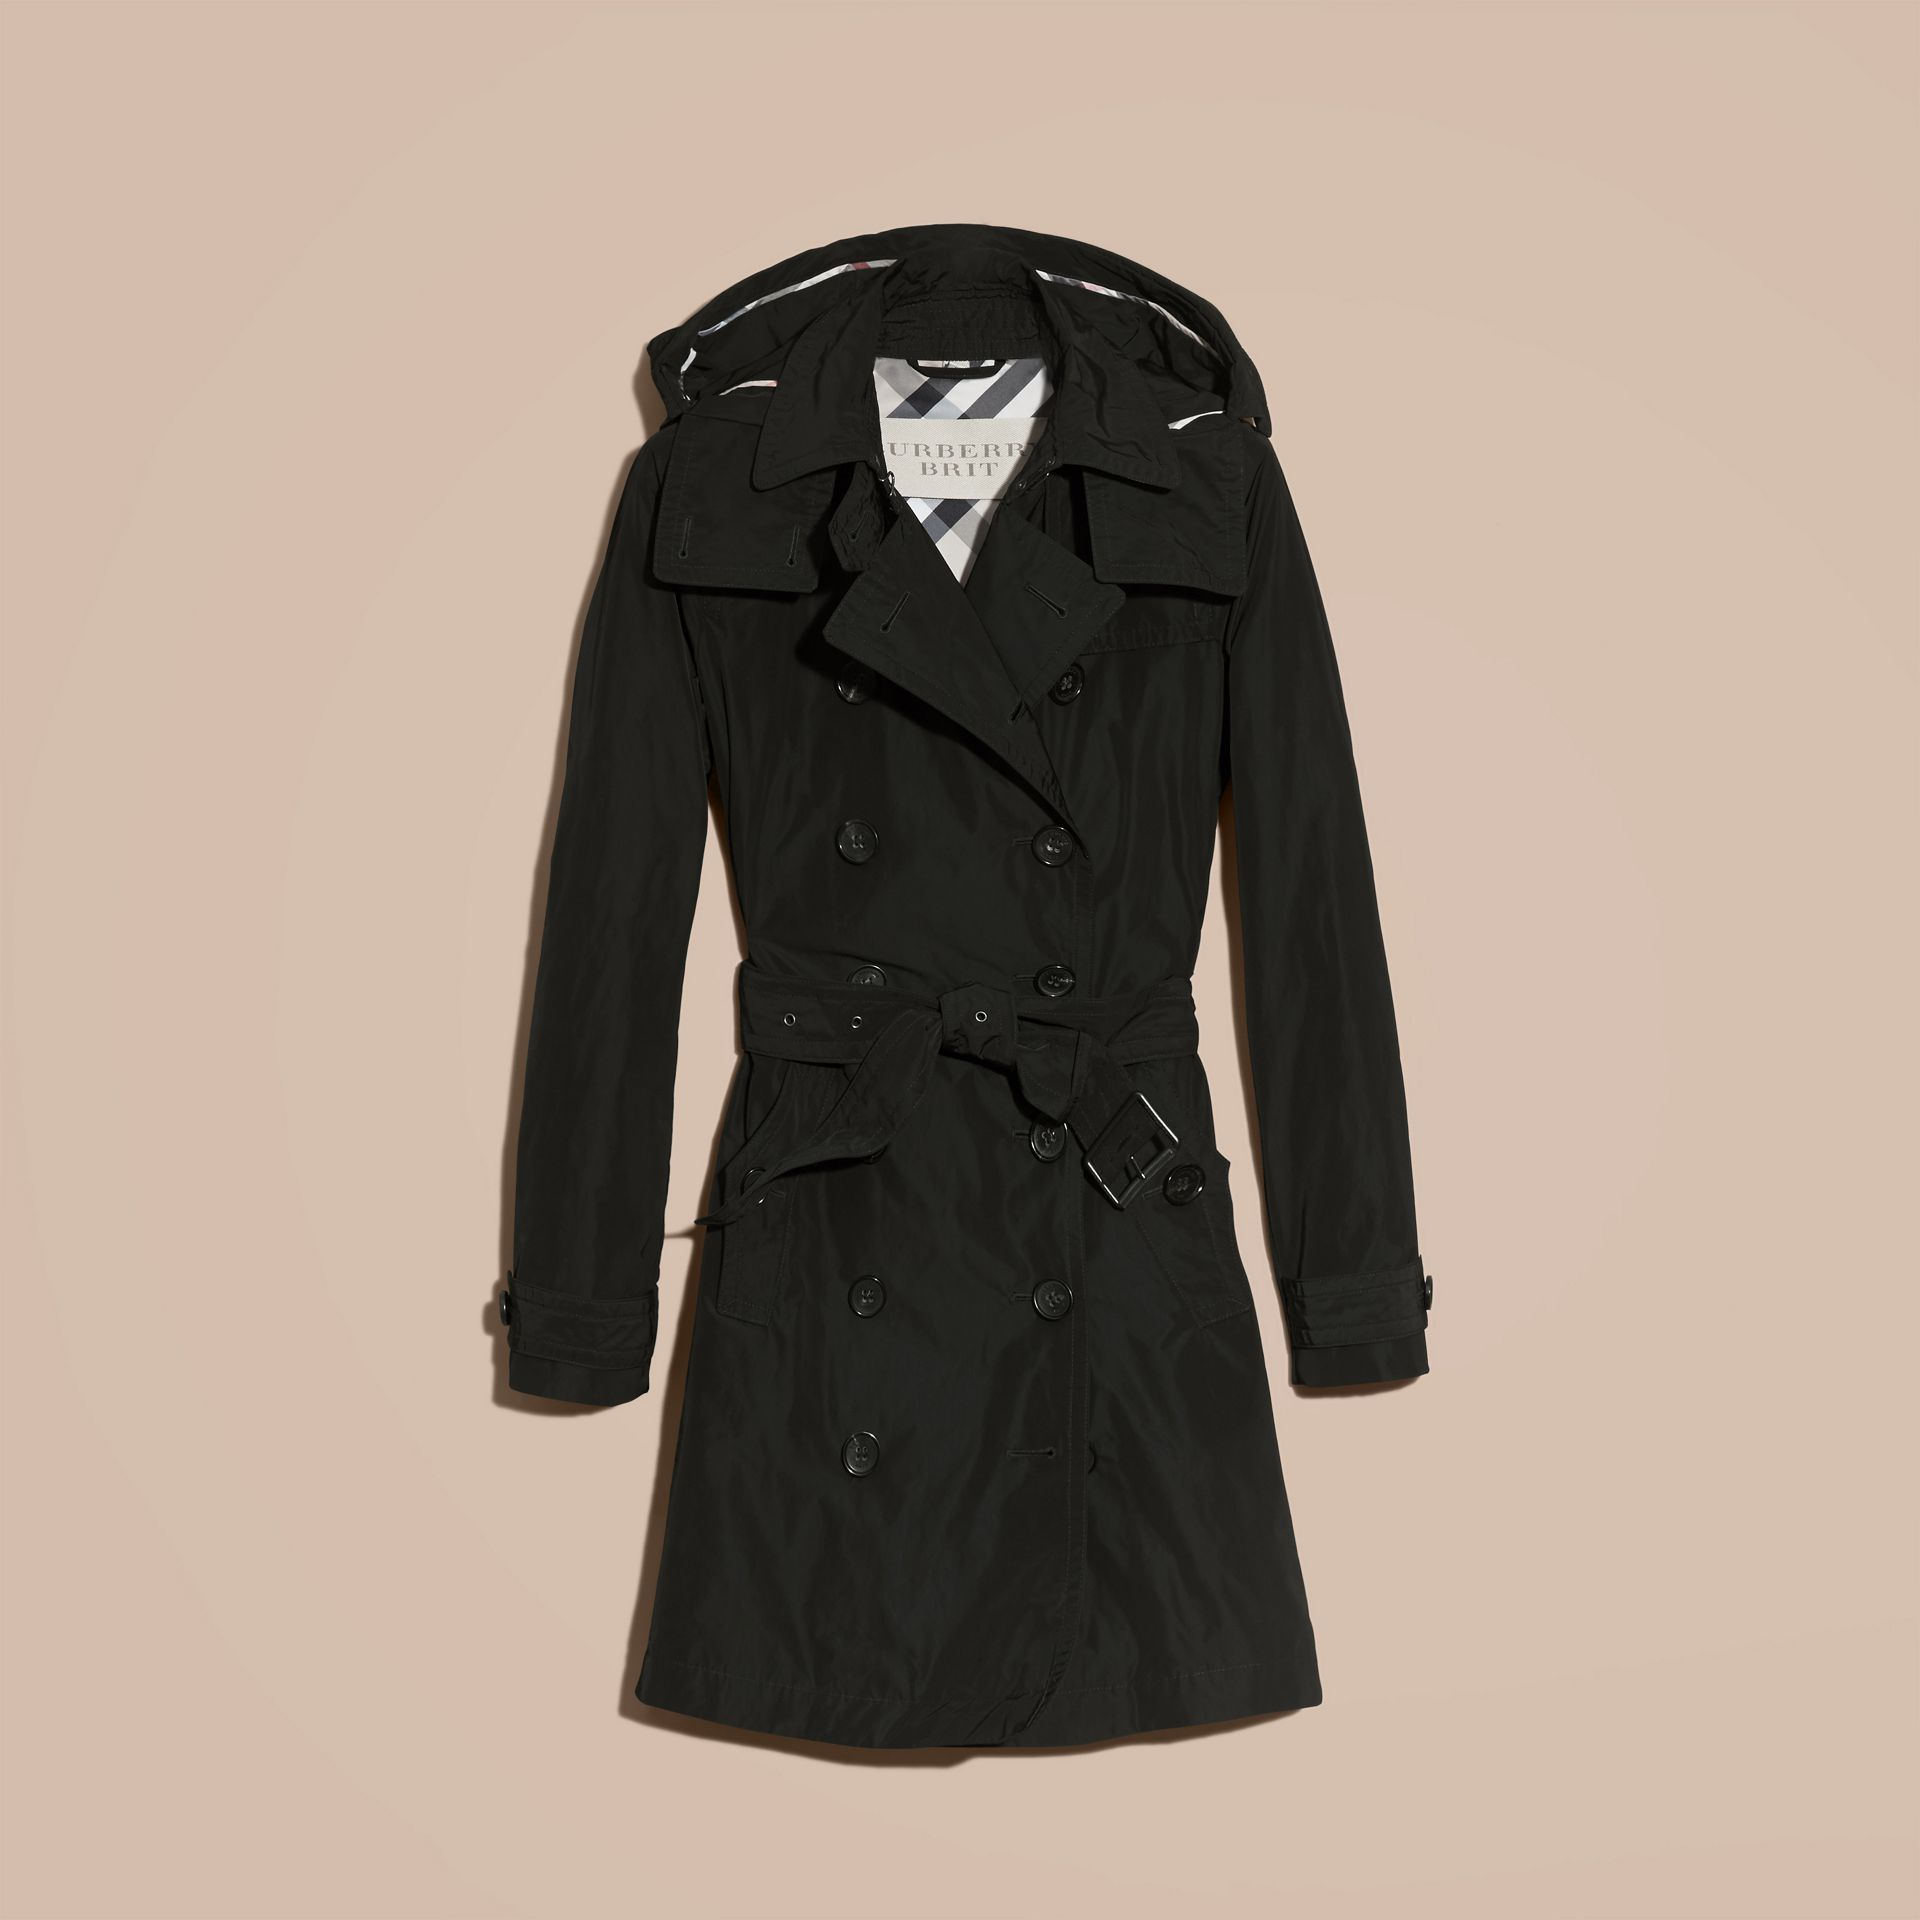 Black Taffeta Trench Coat with Detachable Hood Black - gallery image 4